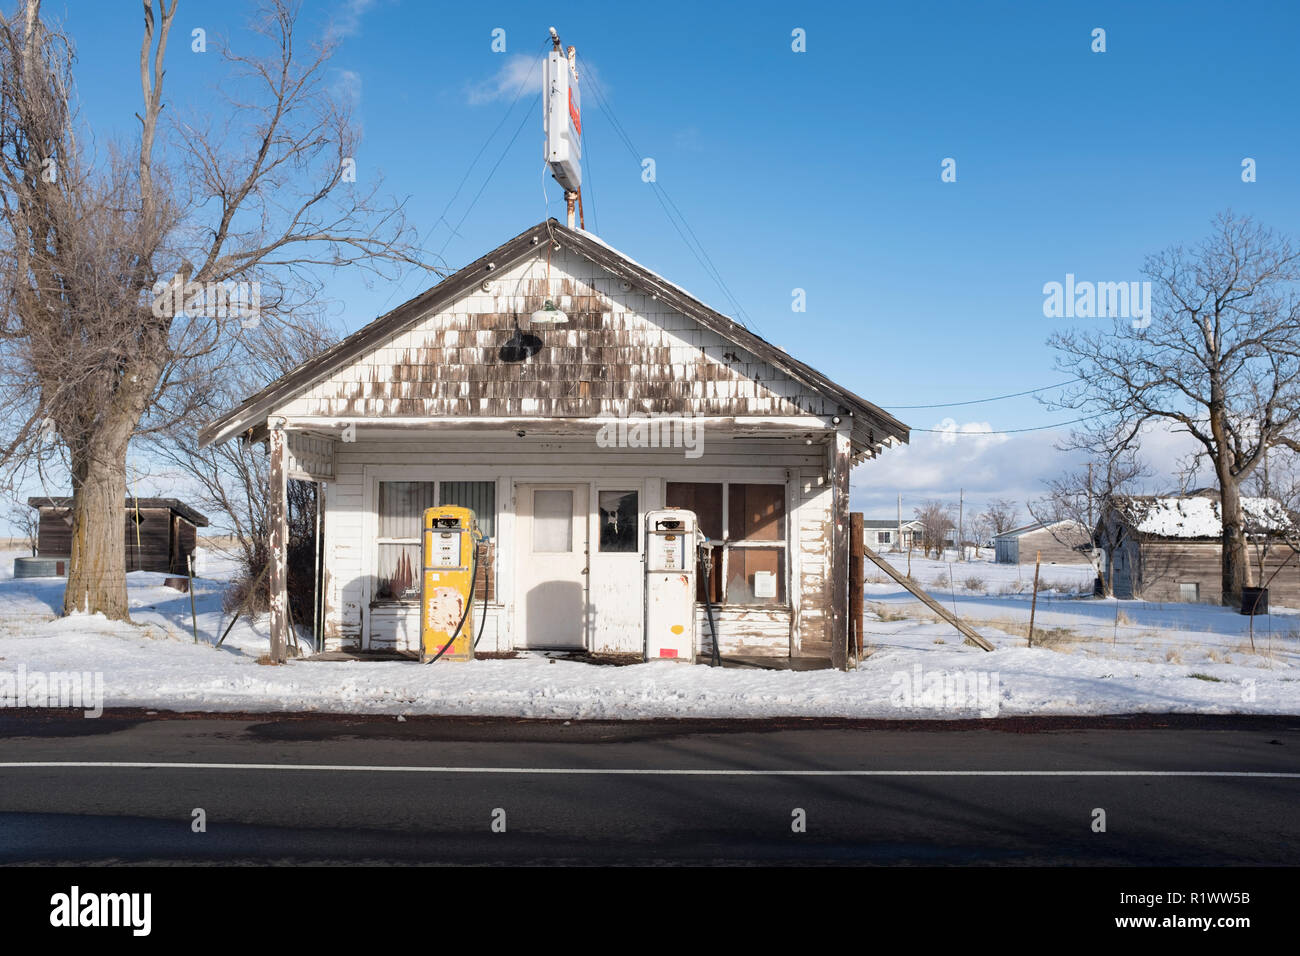 Front View Of Old Abandoned Gas Station Stock Photo Alamy